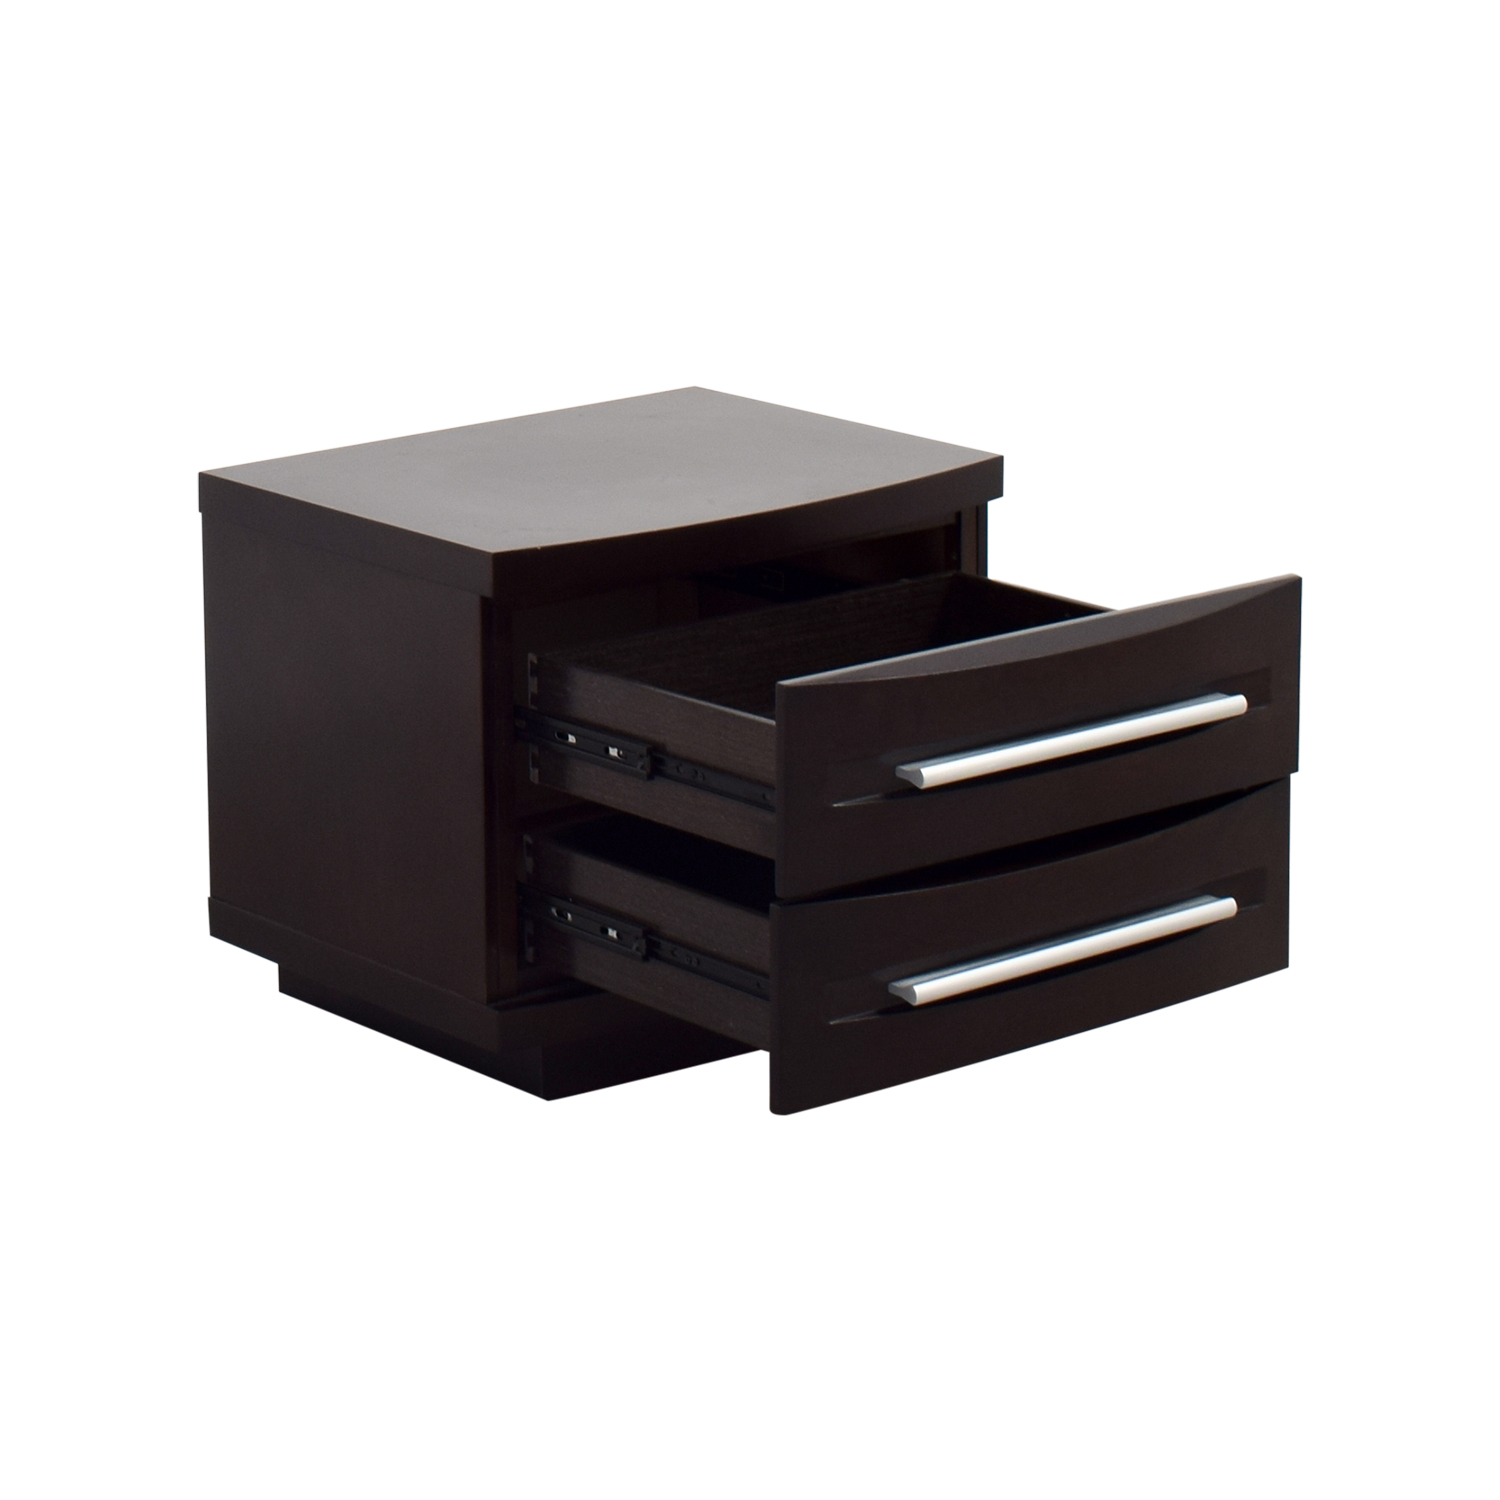 ... Casana Furniture Casana Furniture Two Drawer Nightstand Nj; Shop ...